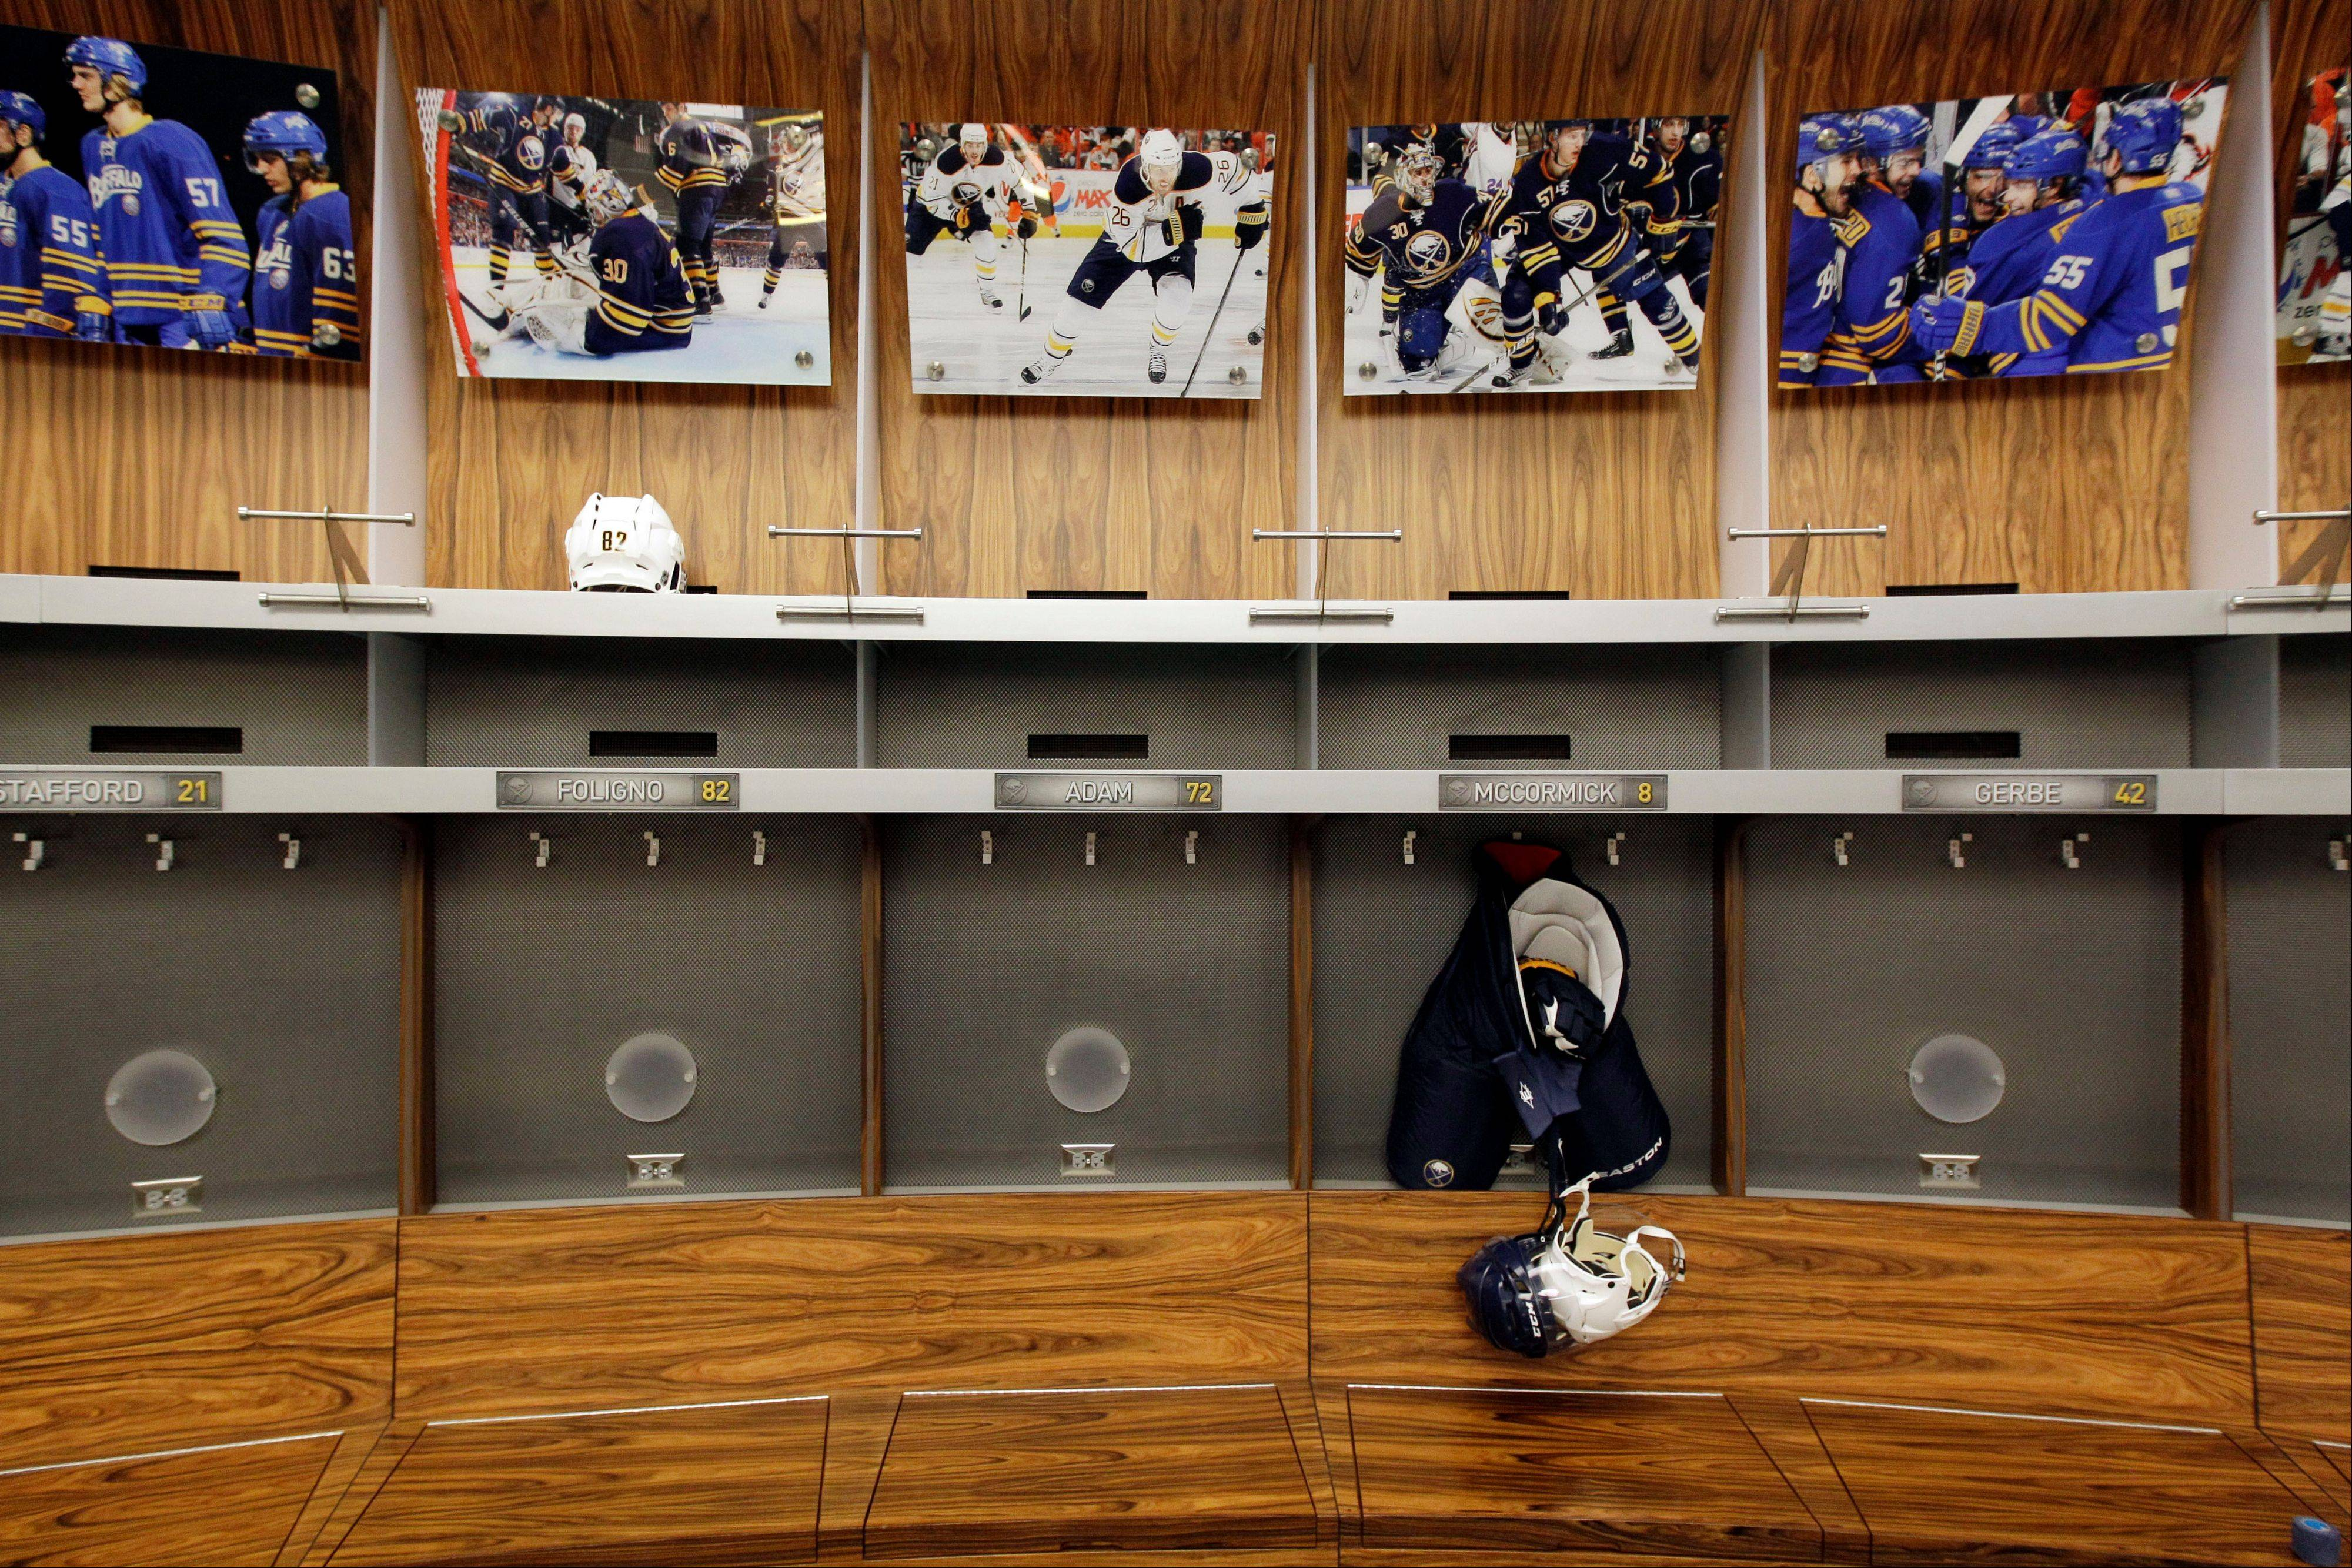 An empty locker room is shown during the NHL labor lockout at the First Niagara Center, home of the Buffalo Sabres, in Buffalo, N.Y. The NHL lockout that�s already wiped out the first three months of the season is taking its toll on Buffalo businesses. And it�s no different in many of the NHL�s 29 other markets.